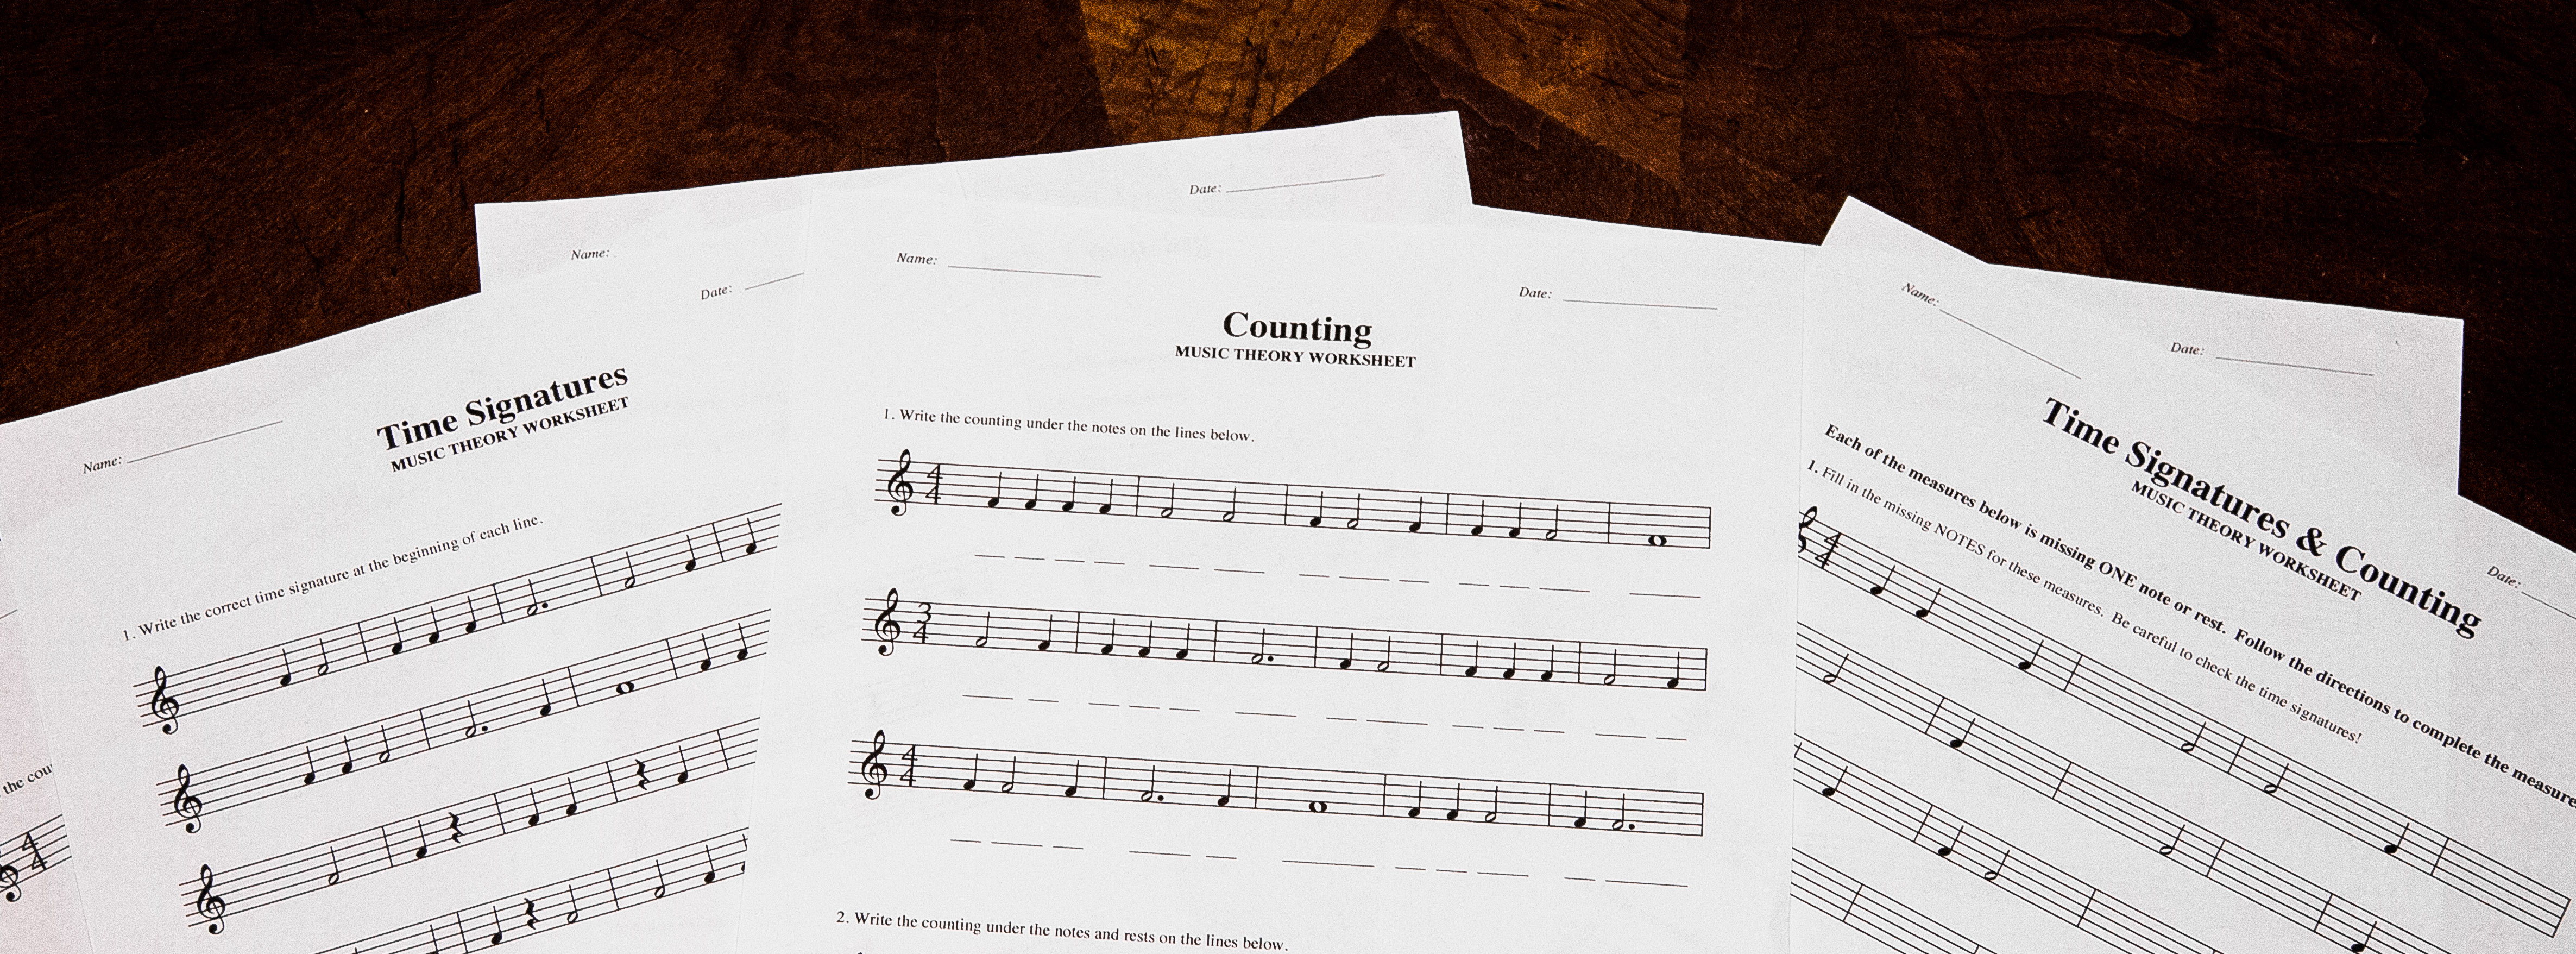 Time Signatures & Counting: Free Printable Theory Worksheets – Lacie | Printable Theory Worksheets